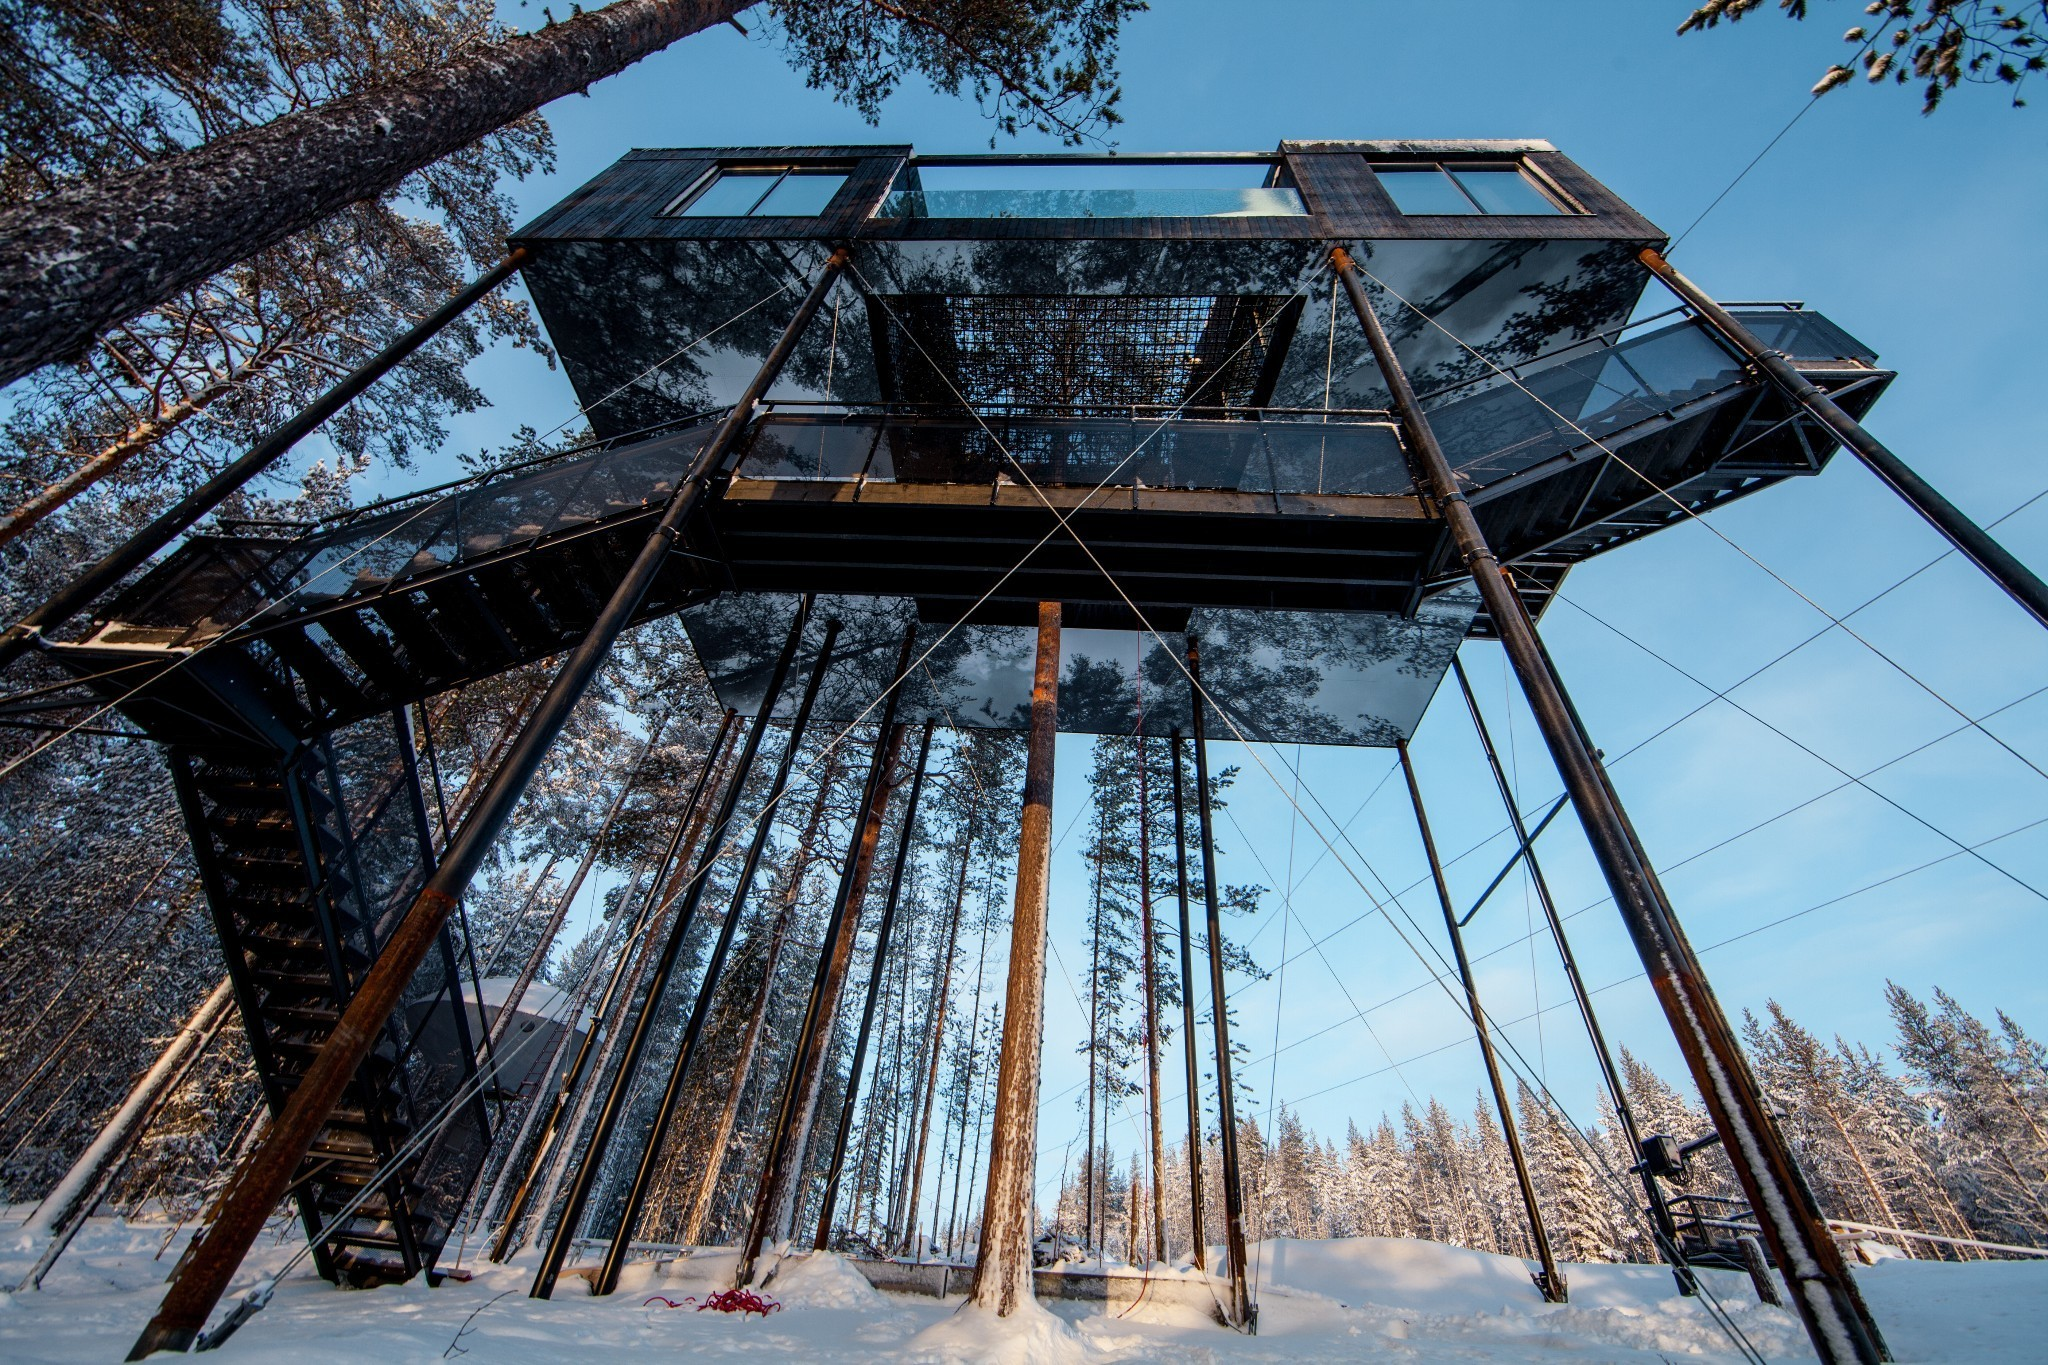 This impressive treetop hotel by Snøhetta 'floats' above a forest floor